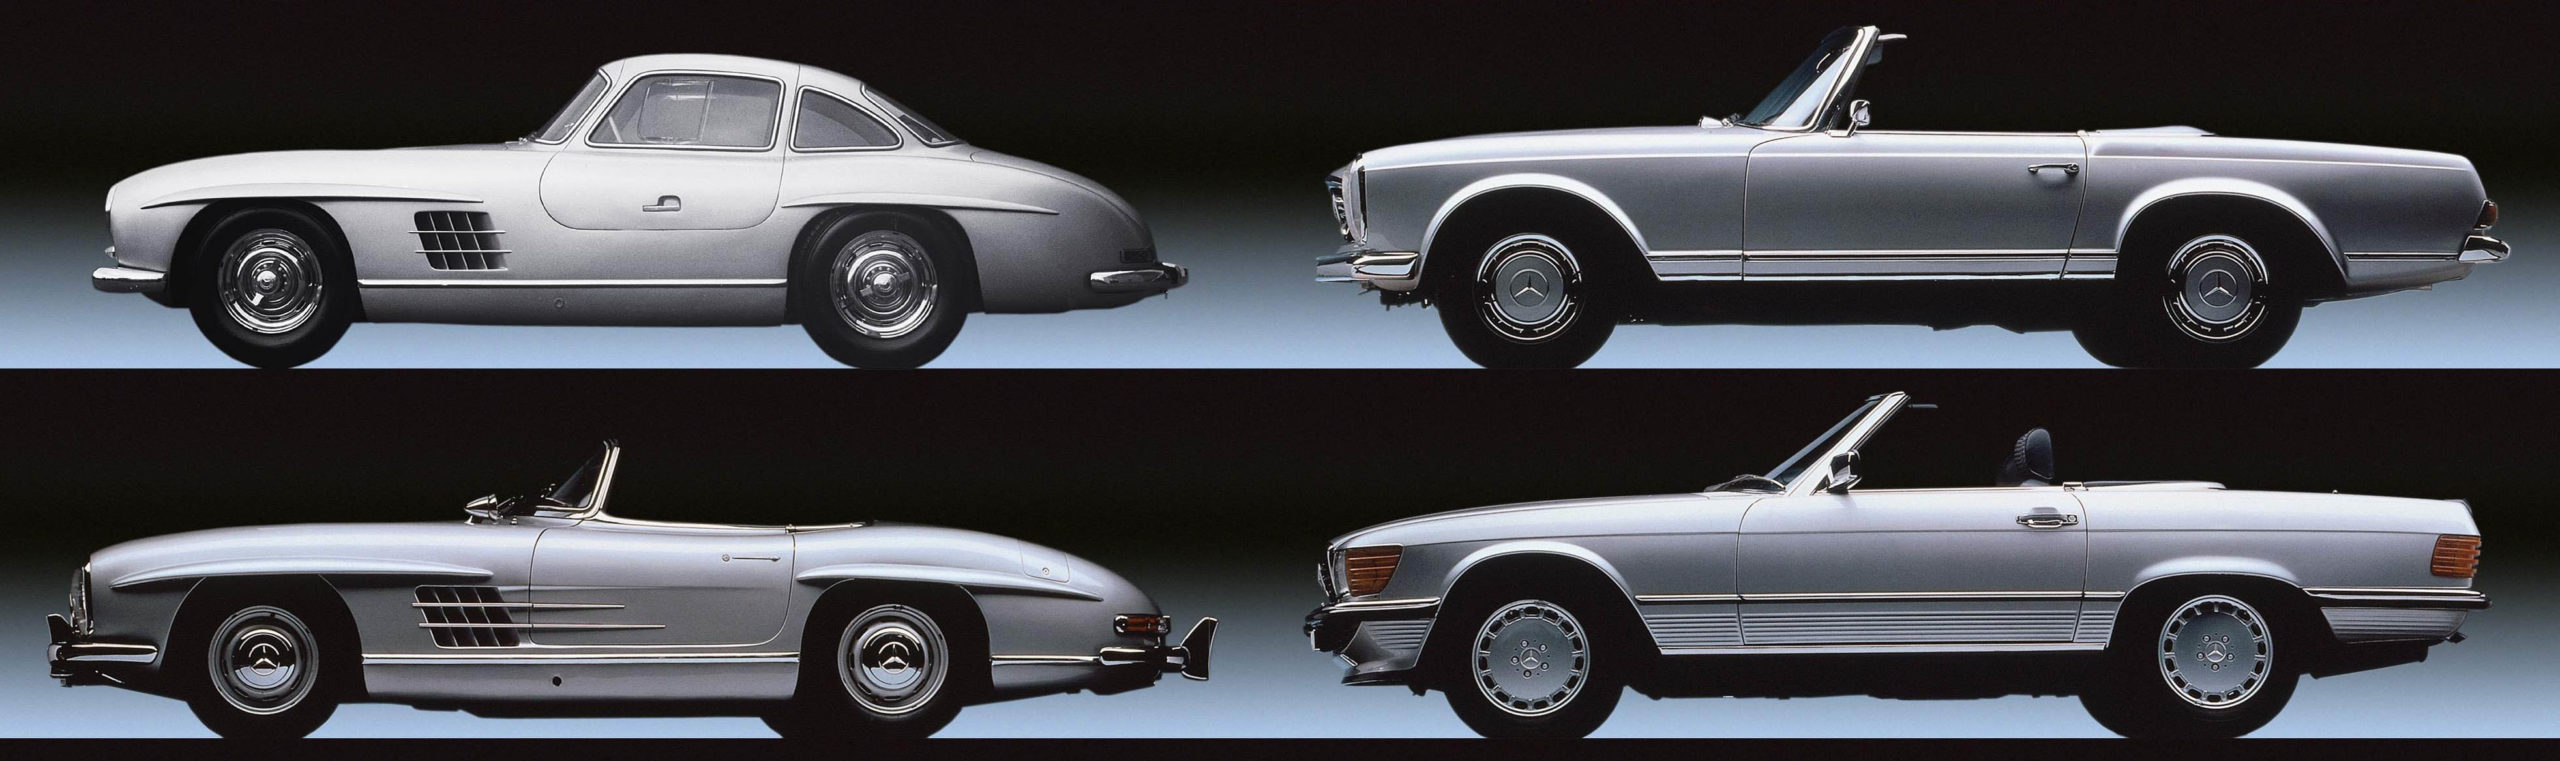 The Mercedes-Benz SL through the years.